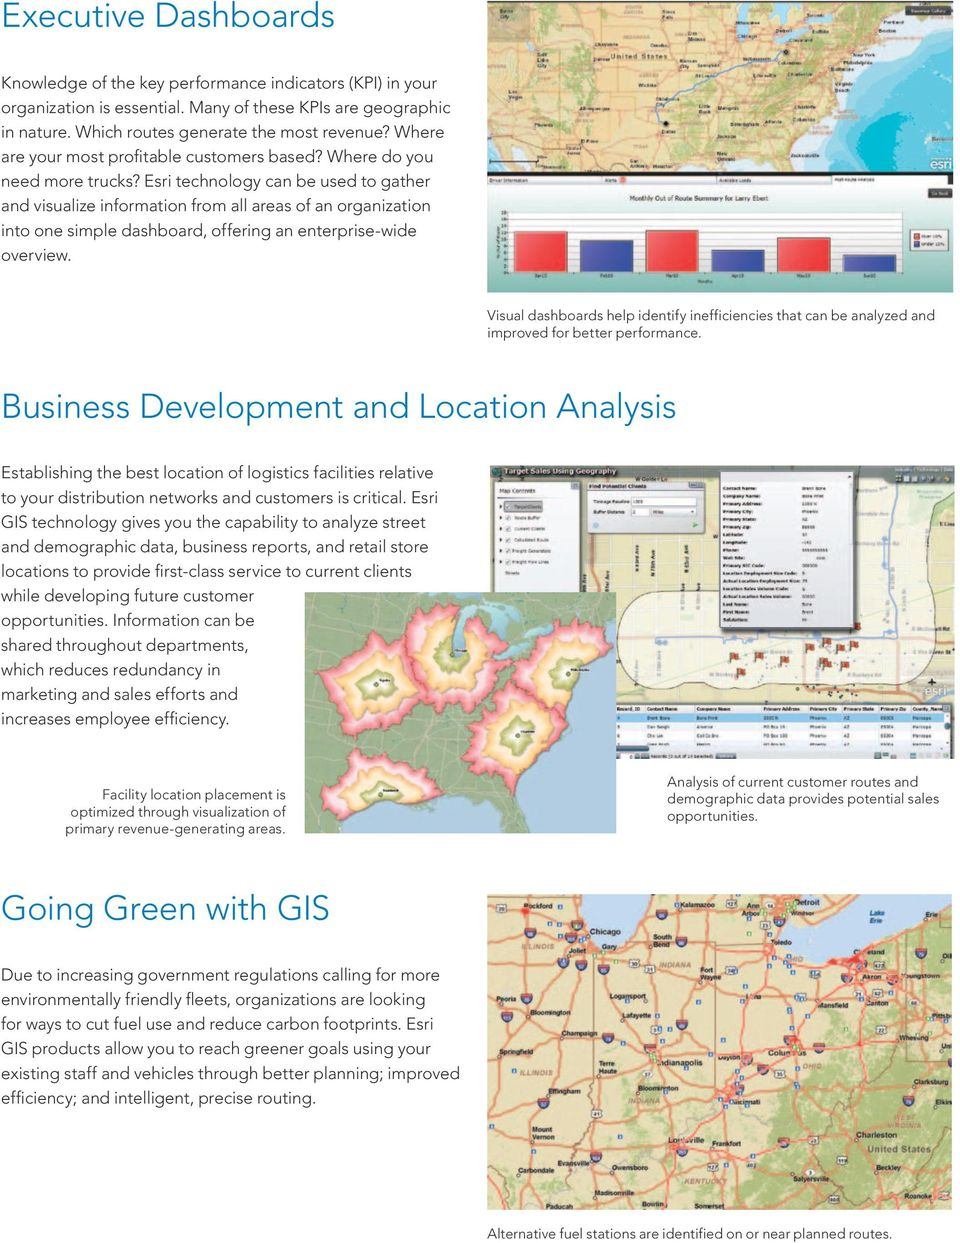 Esri technology can be used to gather and visualize information from all areas of an organization into one simple dashboard, offering an enterprise-wide overview.